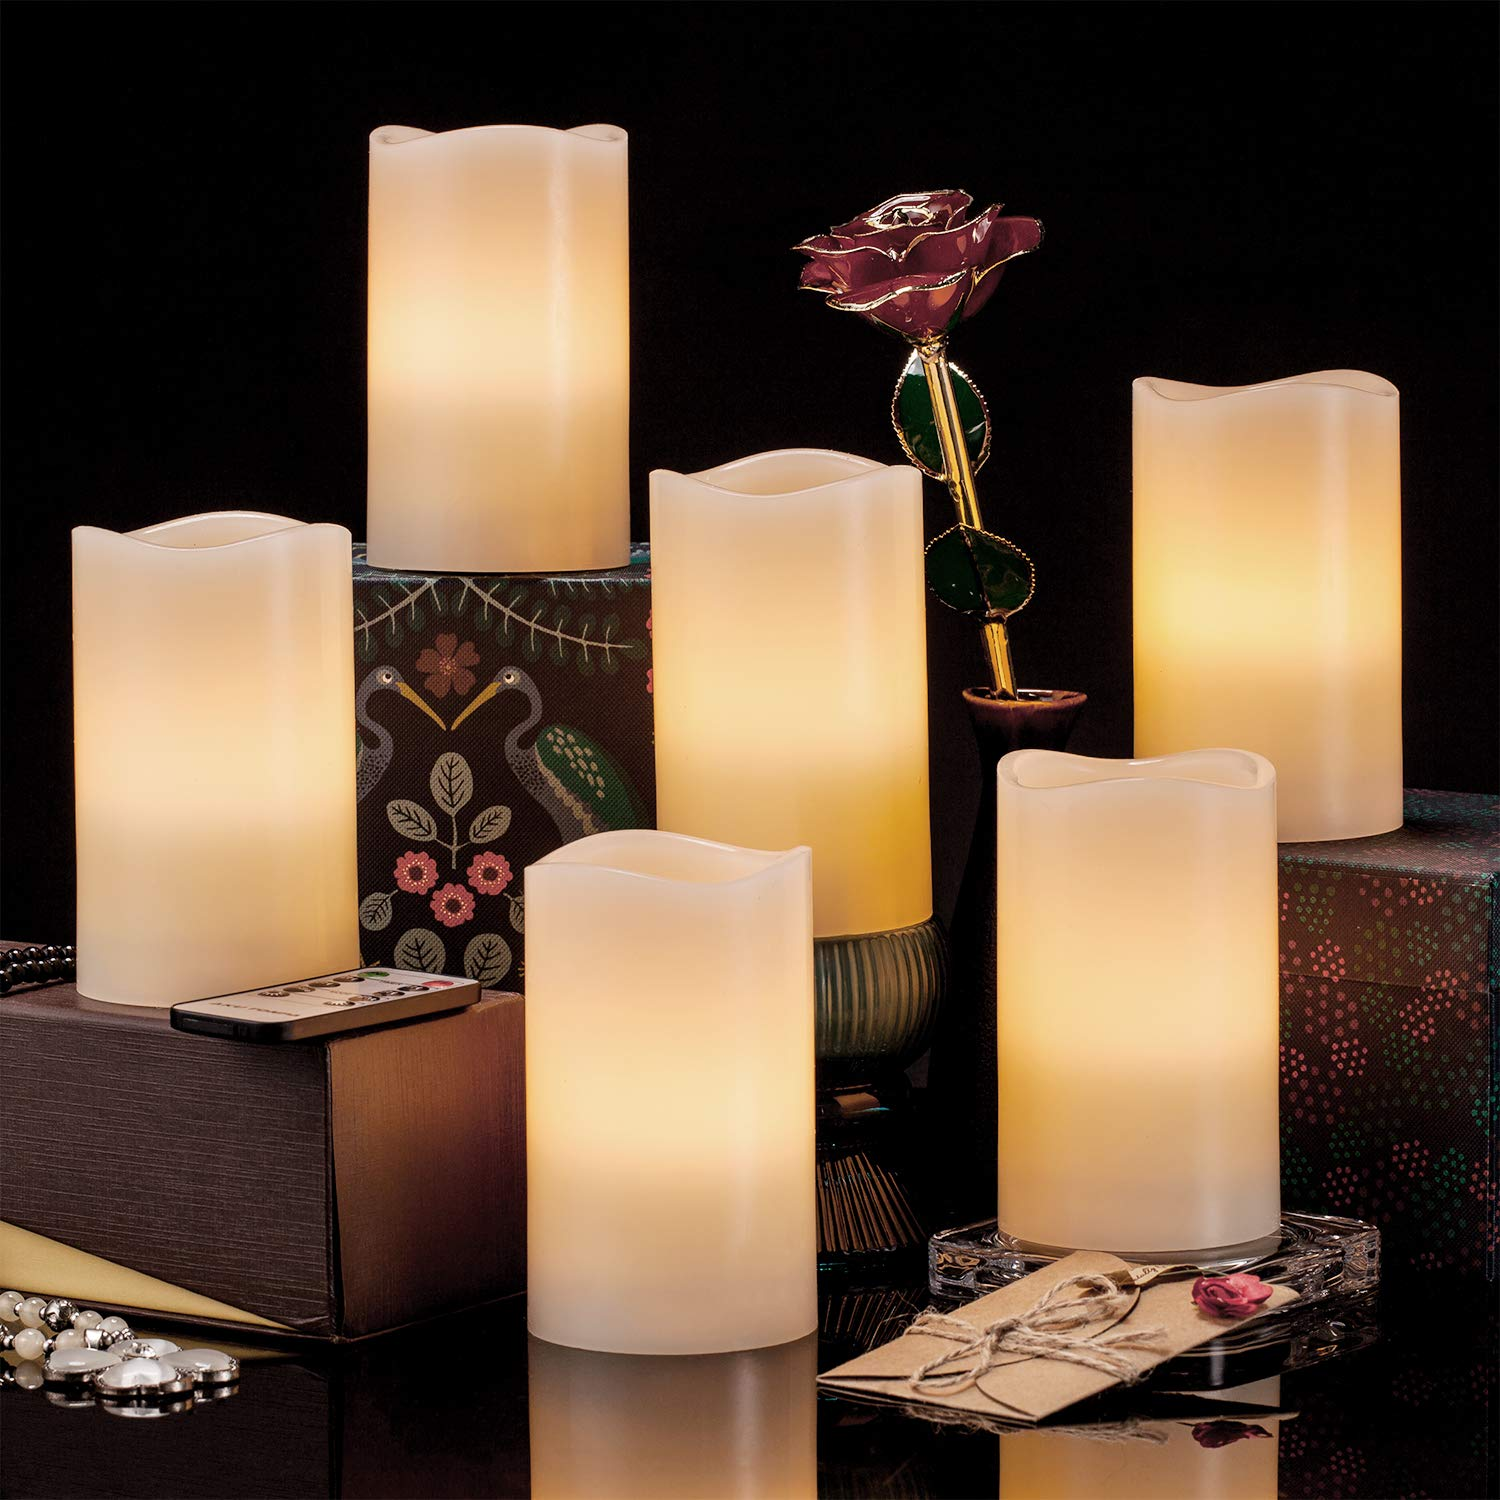 You Only Need 9 Accessories For A Cozy Home Decor and these decorative flicker candles should be one of them. They can be widely applied to birthday, Christmas, home decorations, bars, hotel, parties, holidays, wedding, or other occasions. $22.00 and free shipping on orders over $25 or ship fast & free with Amazon Prime (Try Prime for free!)